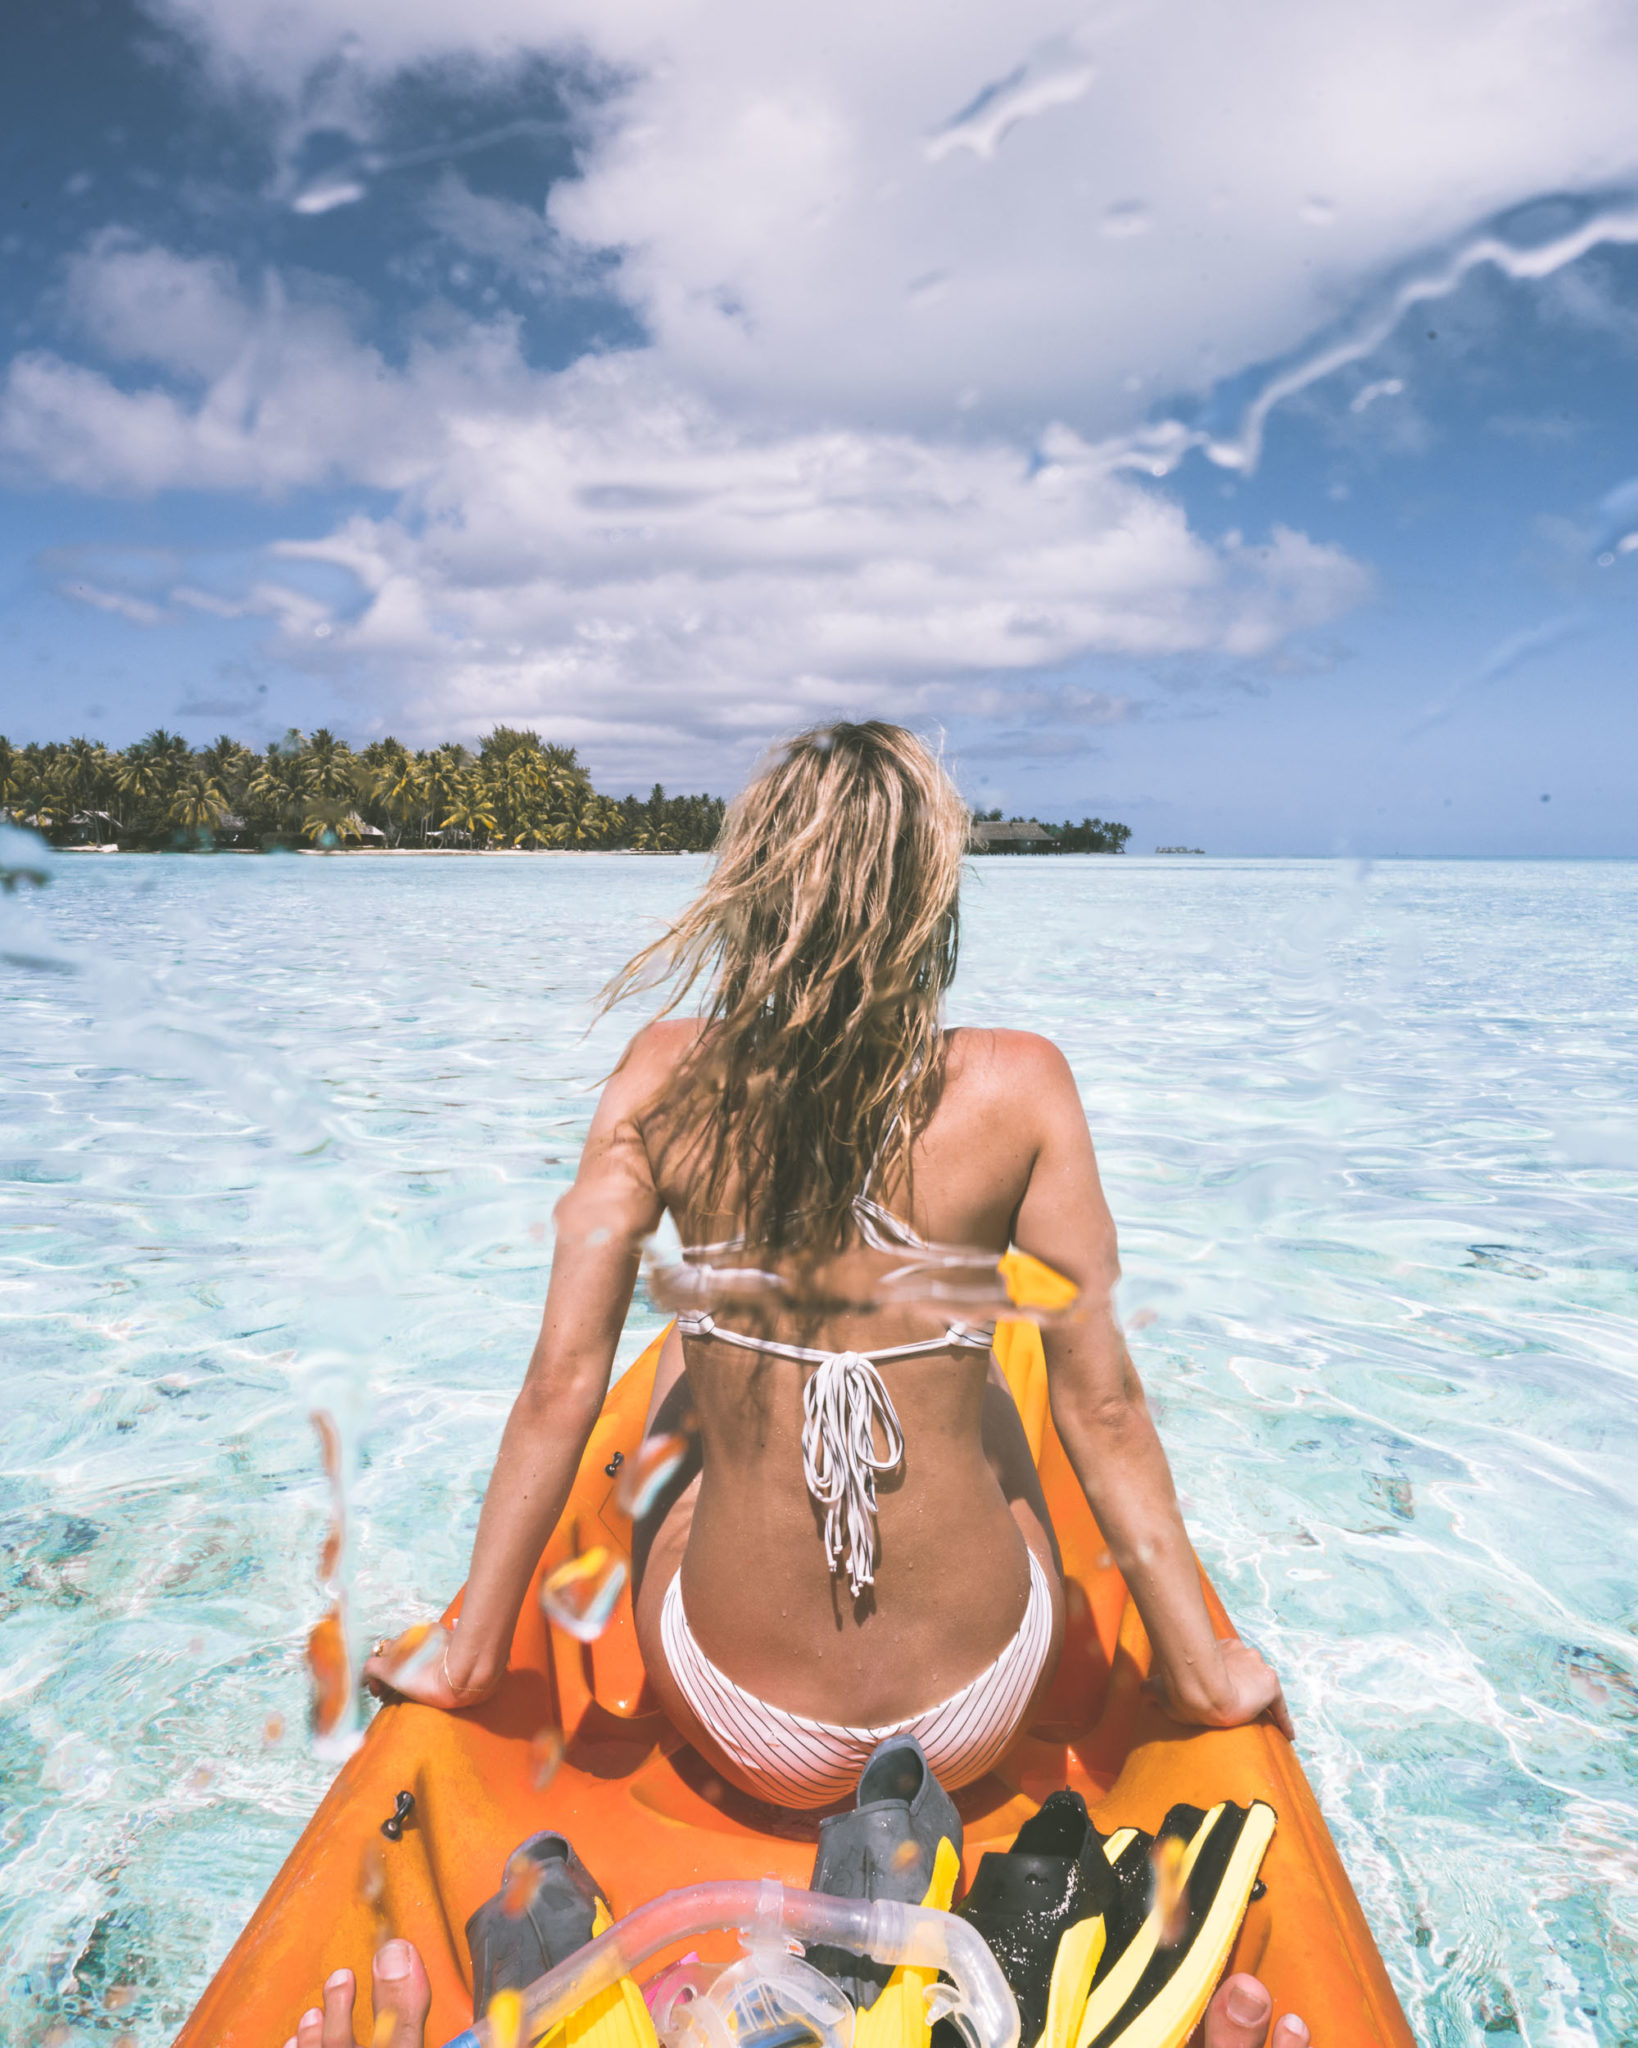 Kayaking at Vahine Island Paradise in Tahiti for our Honeymoon via @finduslost